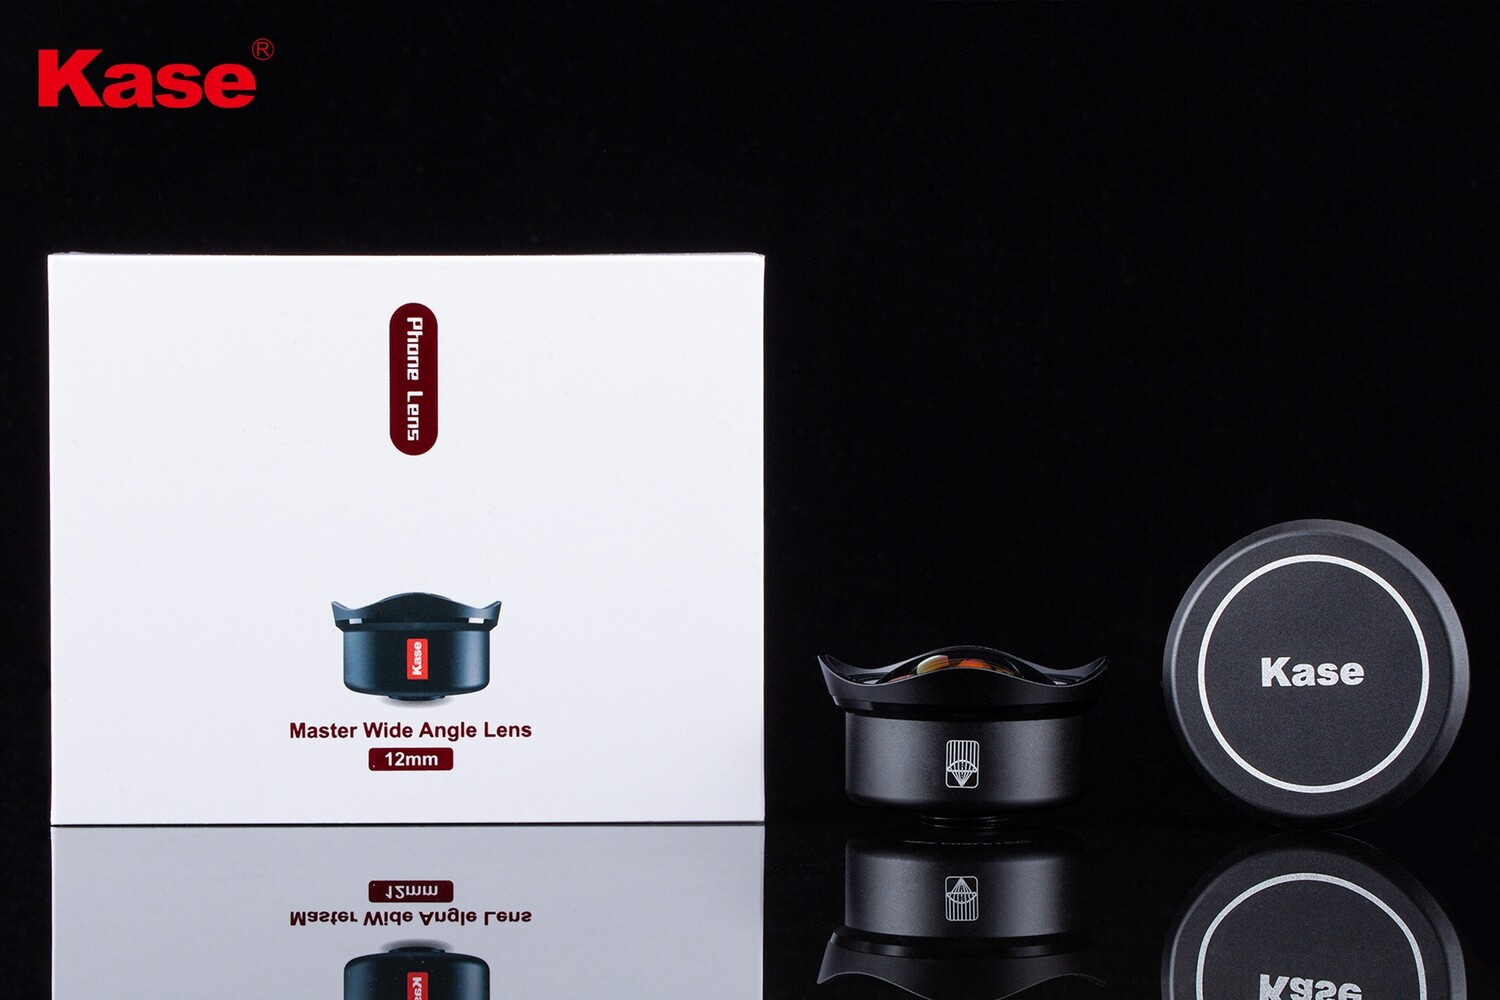 Kase 12mm 220 degree Super Wide Angle Phone Lens [New 2019]